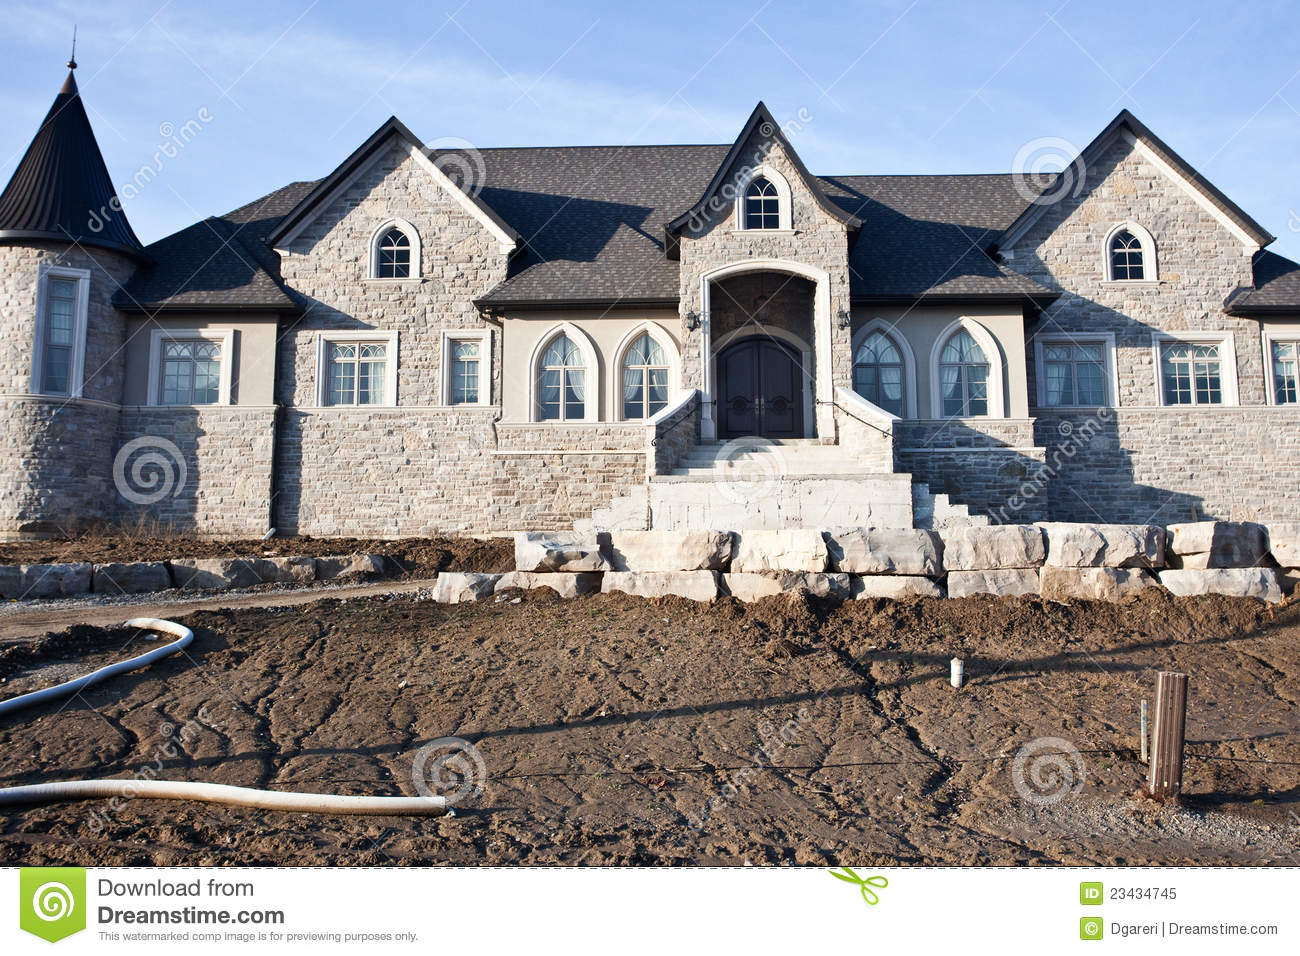 Luxury homes royalty free stock photo image 23434745 for Free luxury home images